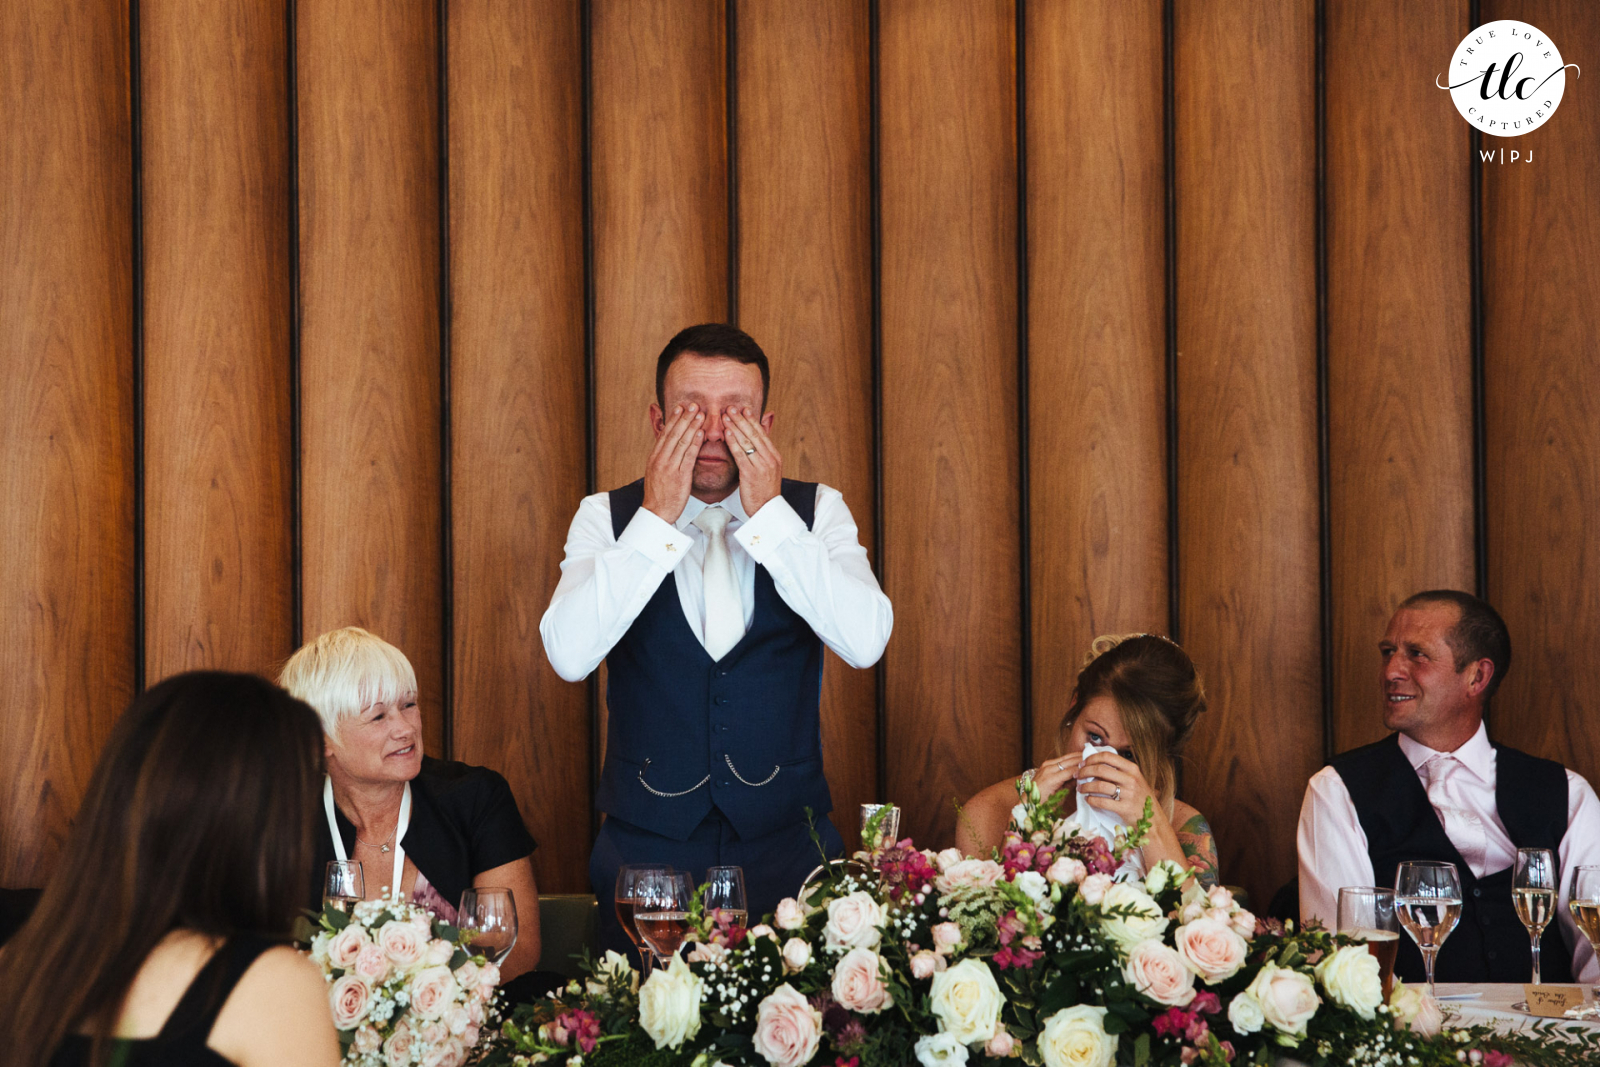 Portmeirion, Wales wedding image of emotion and love with an Emotional groom during speeches